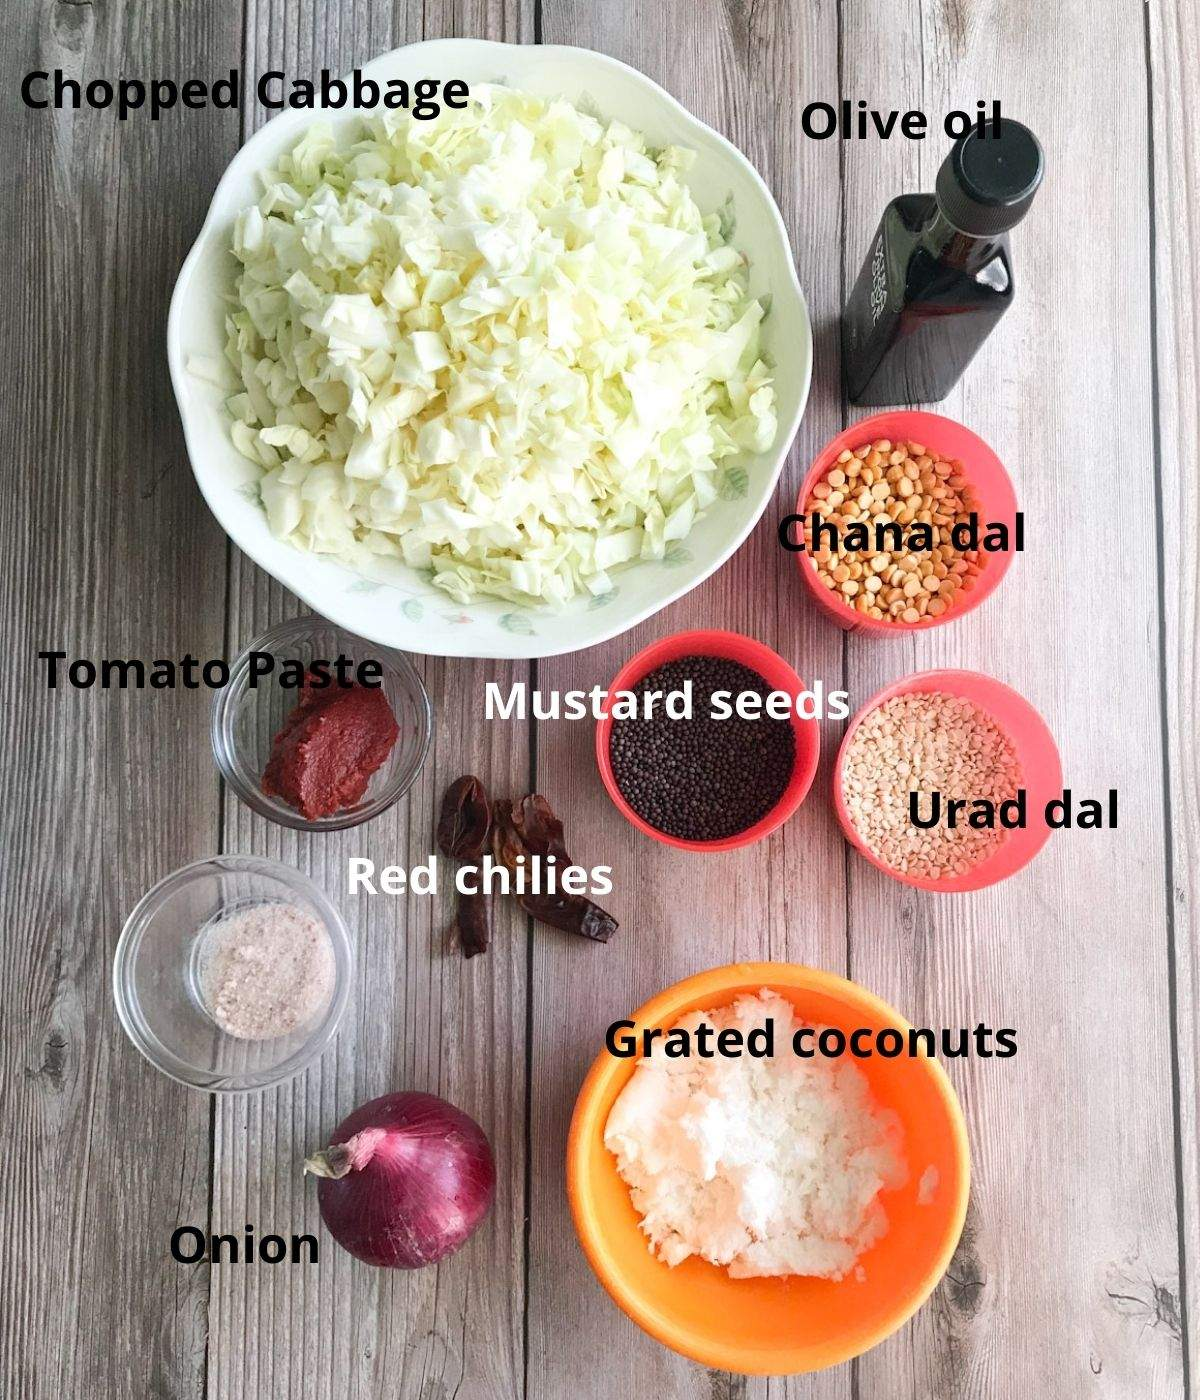 All the Cabbage chutney ingredients are on the table